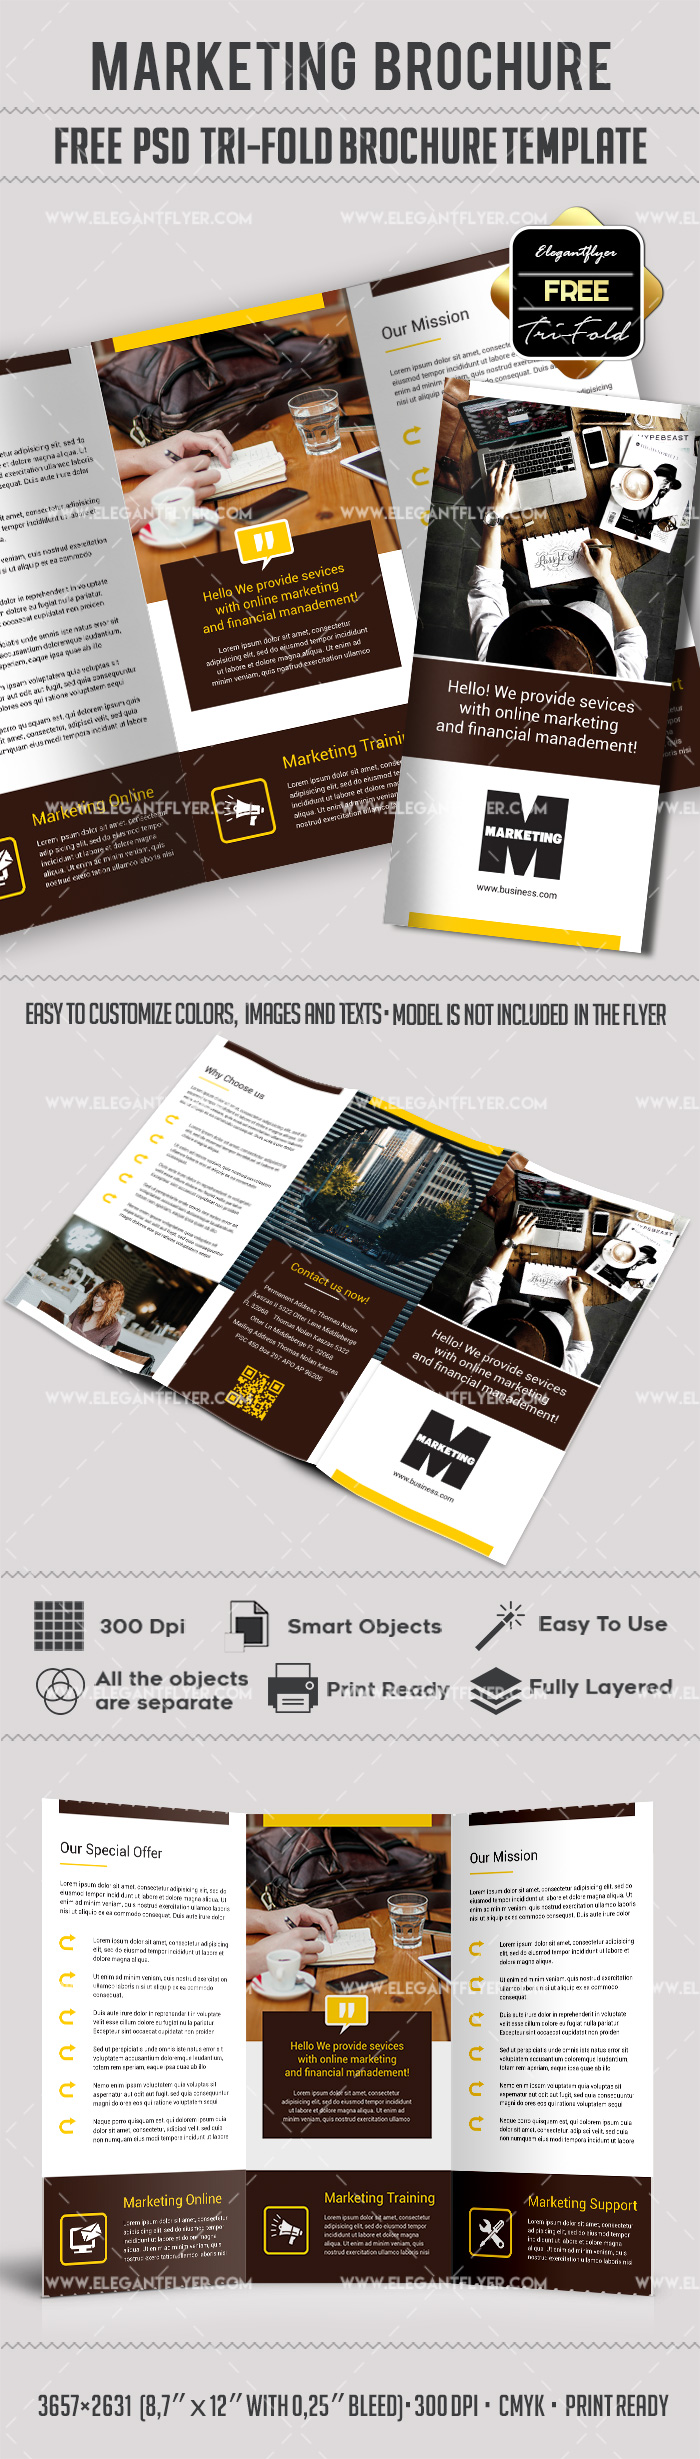 marketing free tri fold psd brochure template by elegantflyer. Black Bedroom Furniture Sets. Home Design Ideas